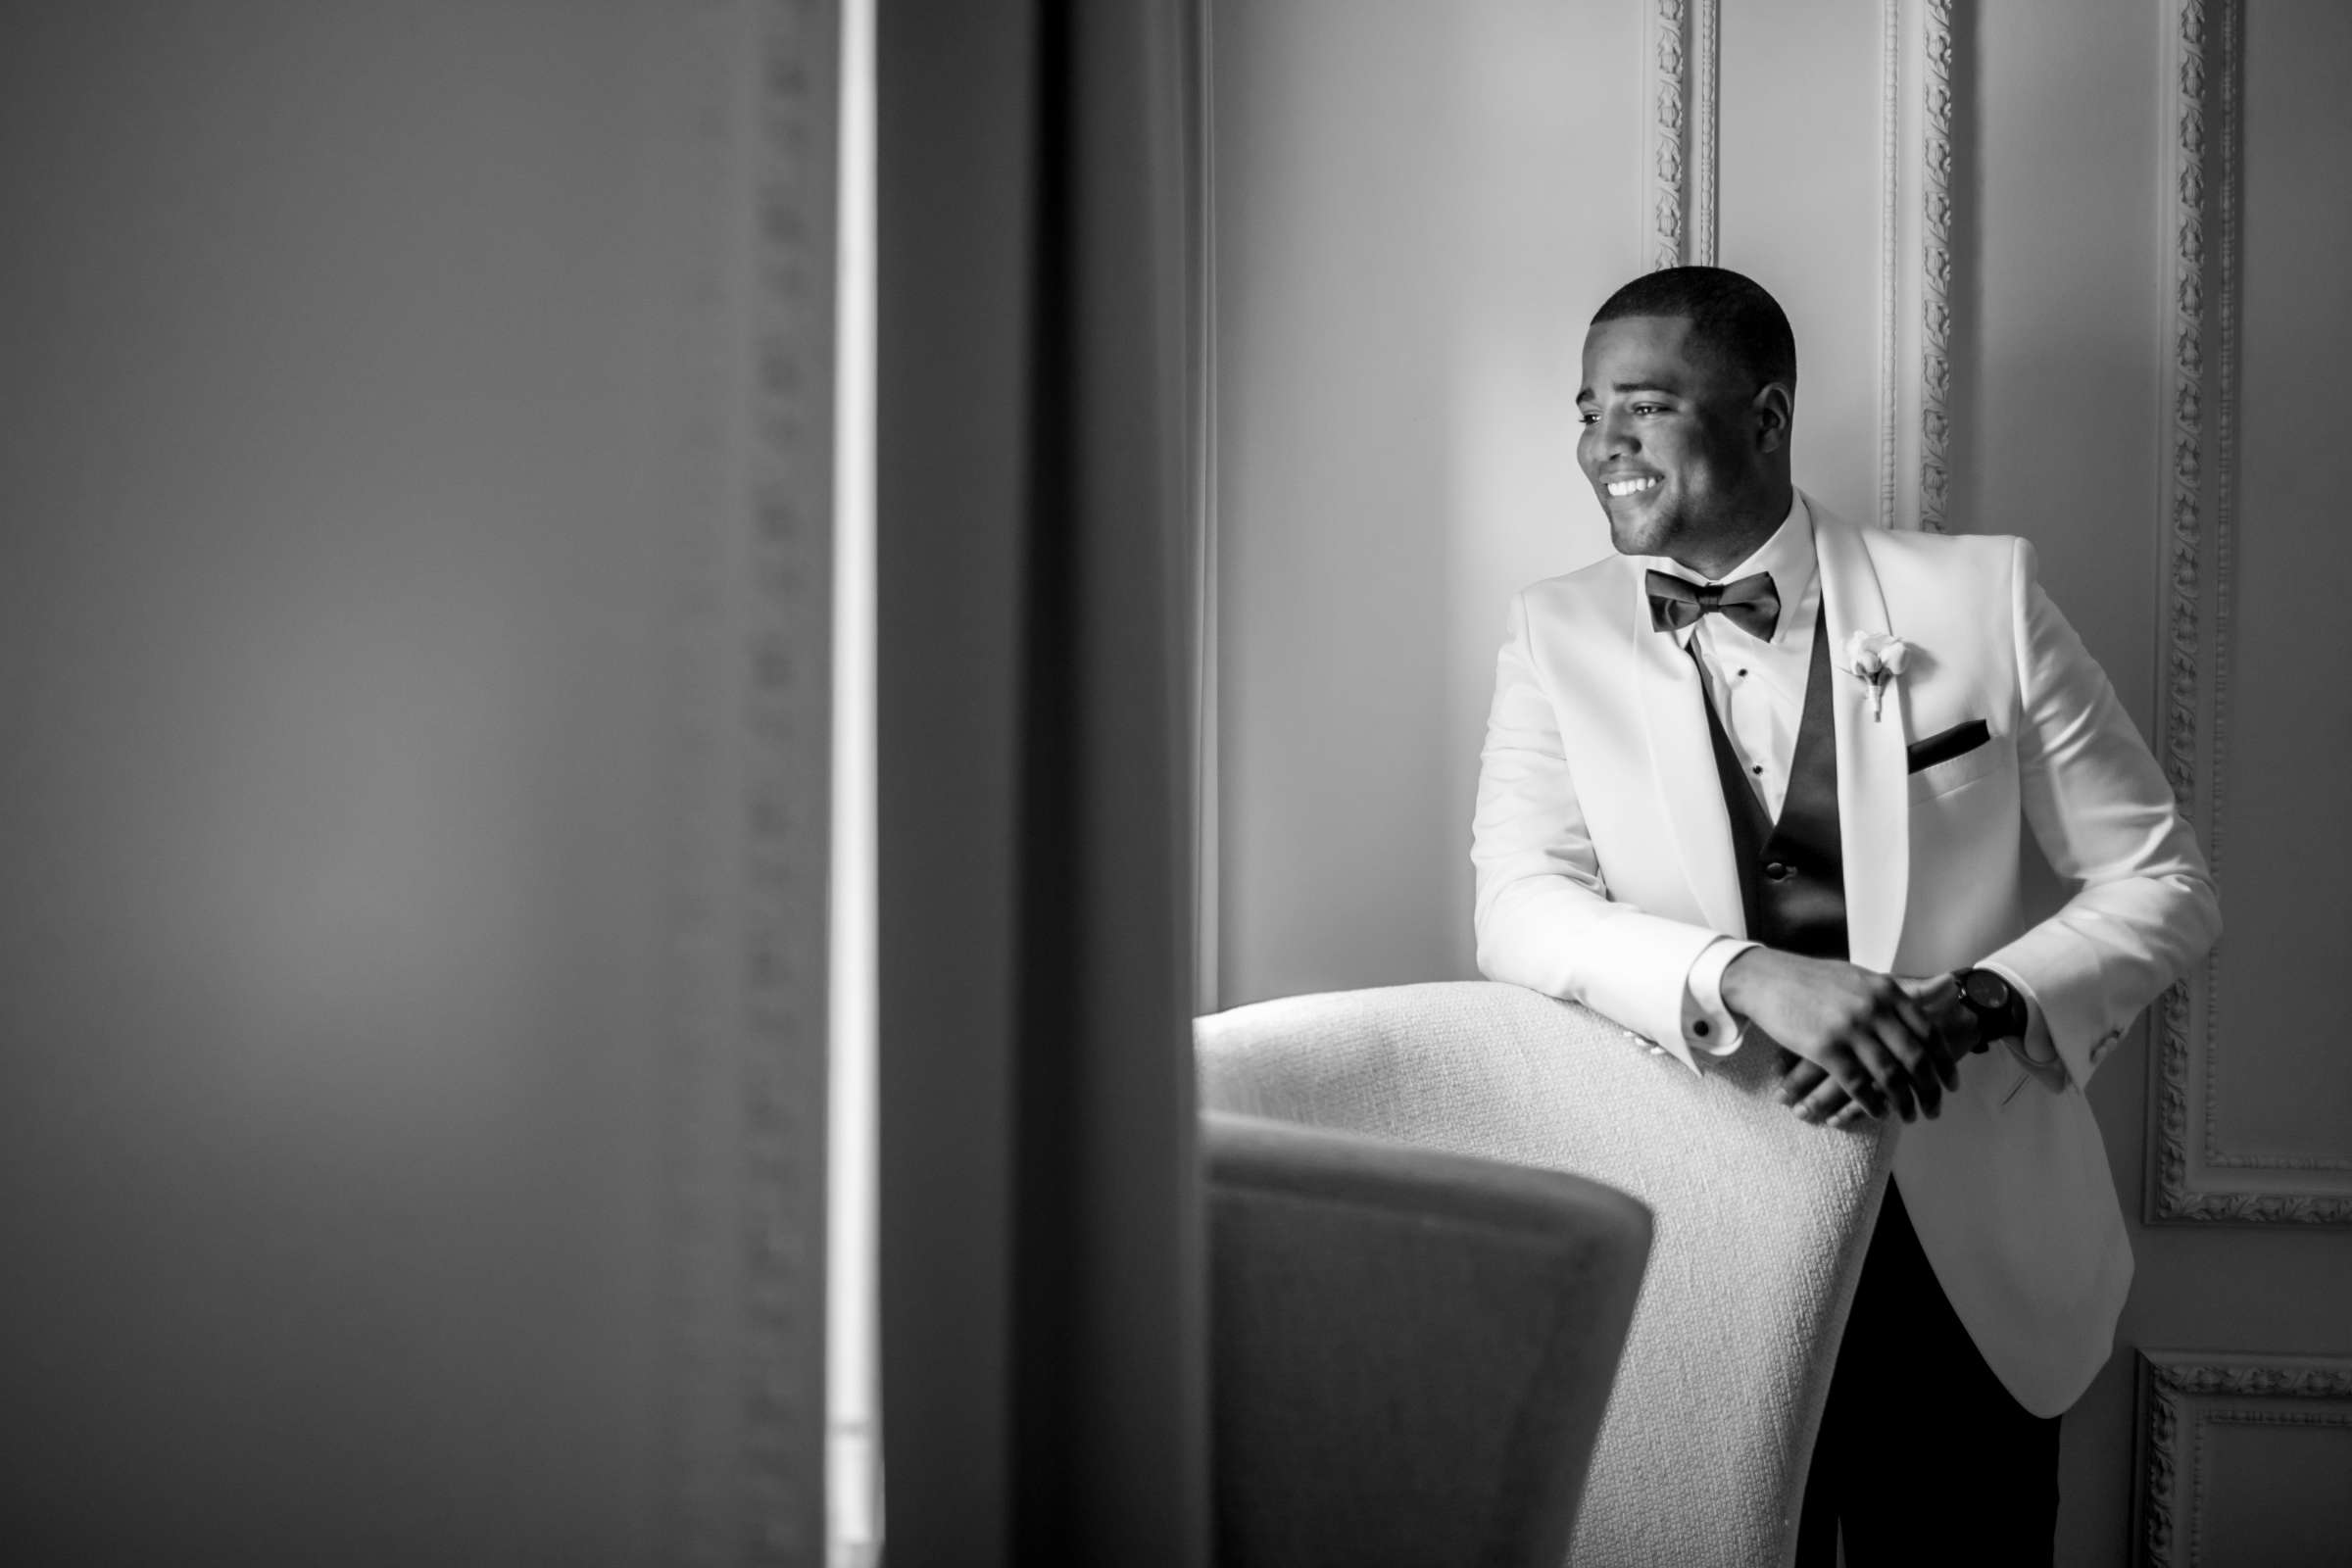 Classical moment, Groom, Black and White photo at Coronado Community Center Wedding coordinated by First Comes Love Weddings & Events, Nikia and Charles Wedding Photo #17 by True Photography